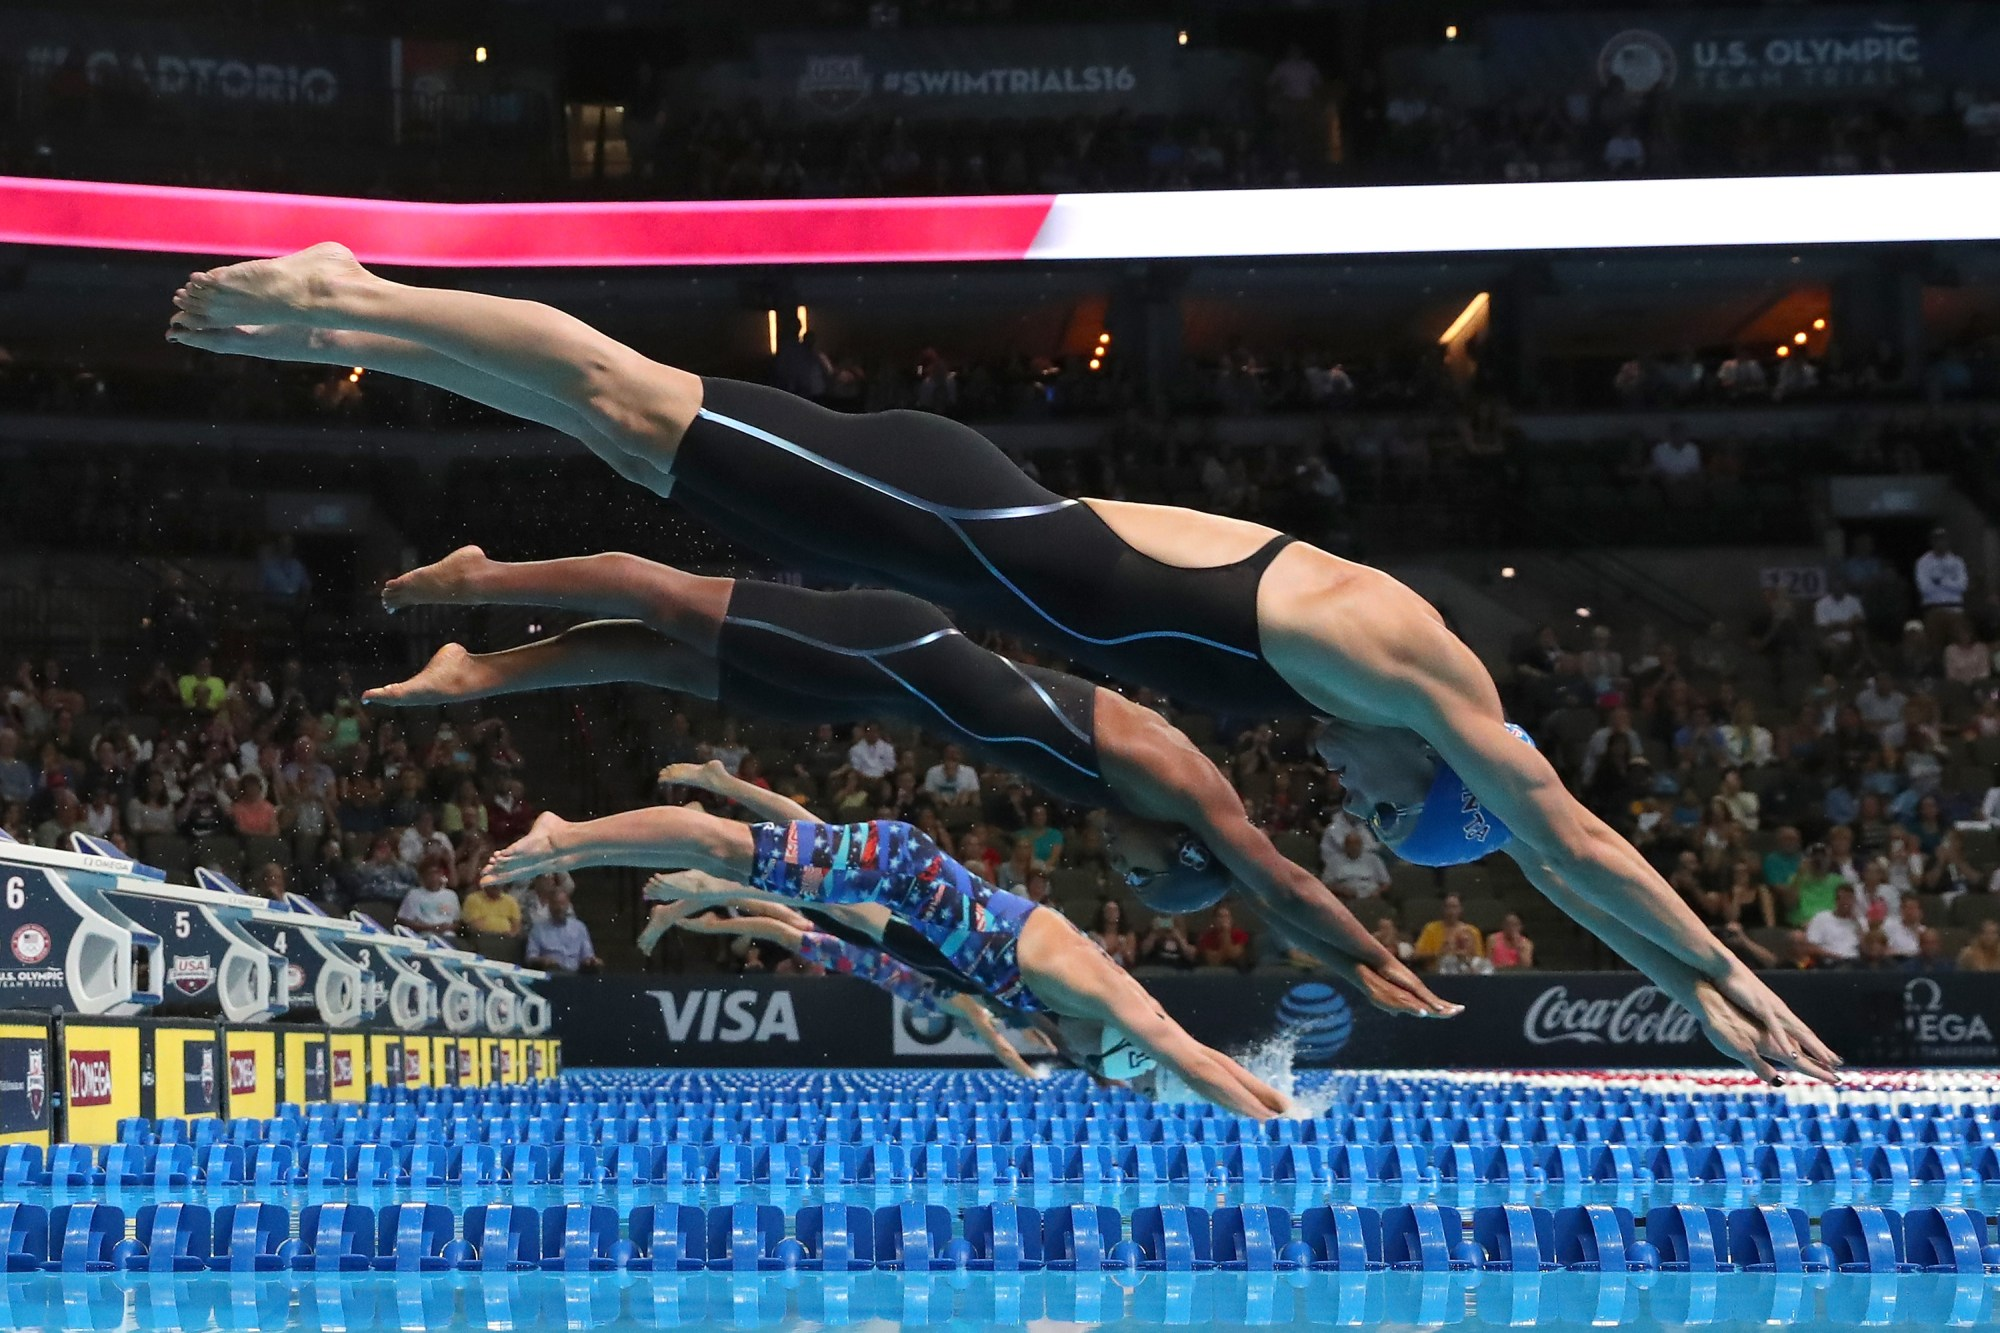 Amanda Weir, Lia Neal, Katrina Konopka, Madison Kennedy and Abbey Weitzeil of the United States dive in to compete in the final heat for the Women's 50 Meter Freestyle during Day Eight of the 2016 U.S. Olympic Team Swimming Trials at CenturyLink Center on July 3, 2016 in Omaha, Nebraska. (Tom Pennington/Getty Images)